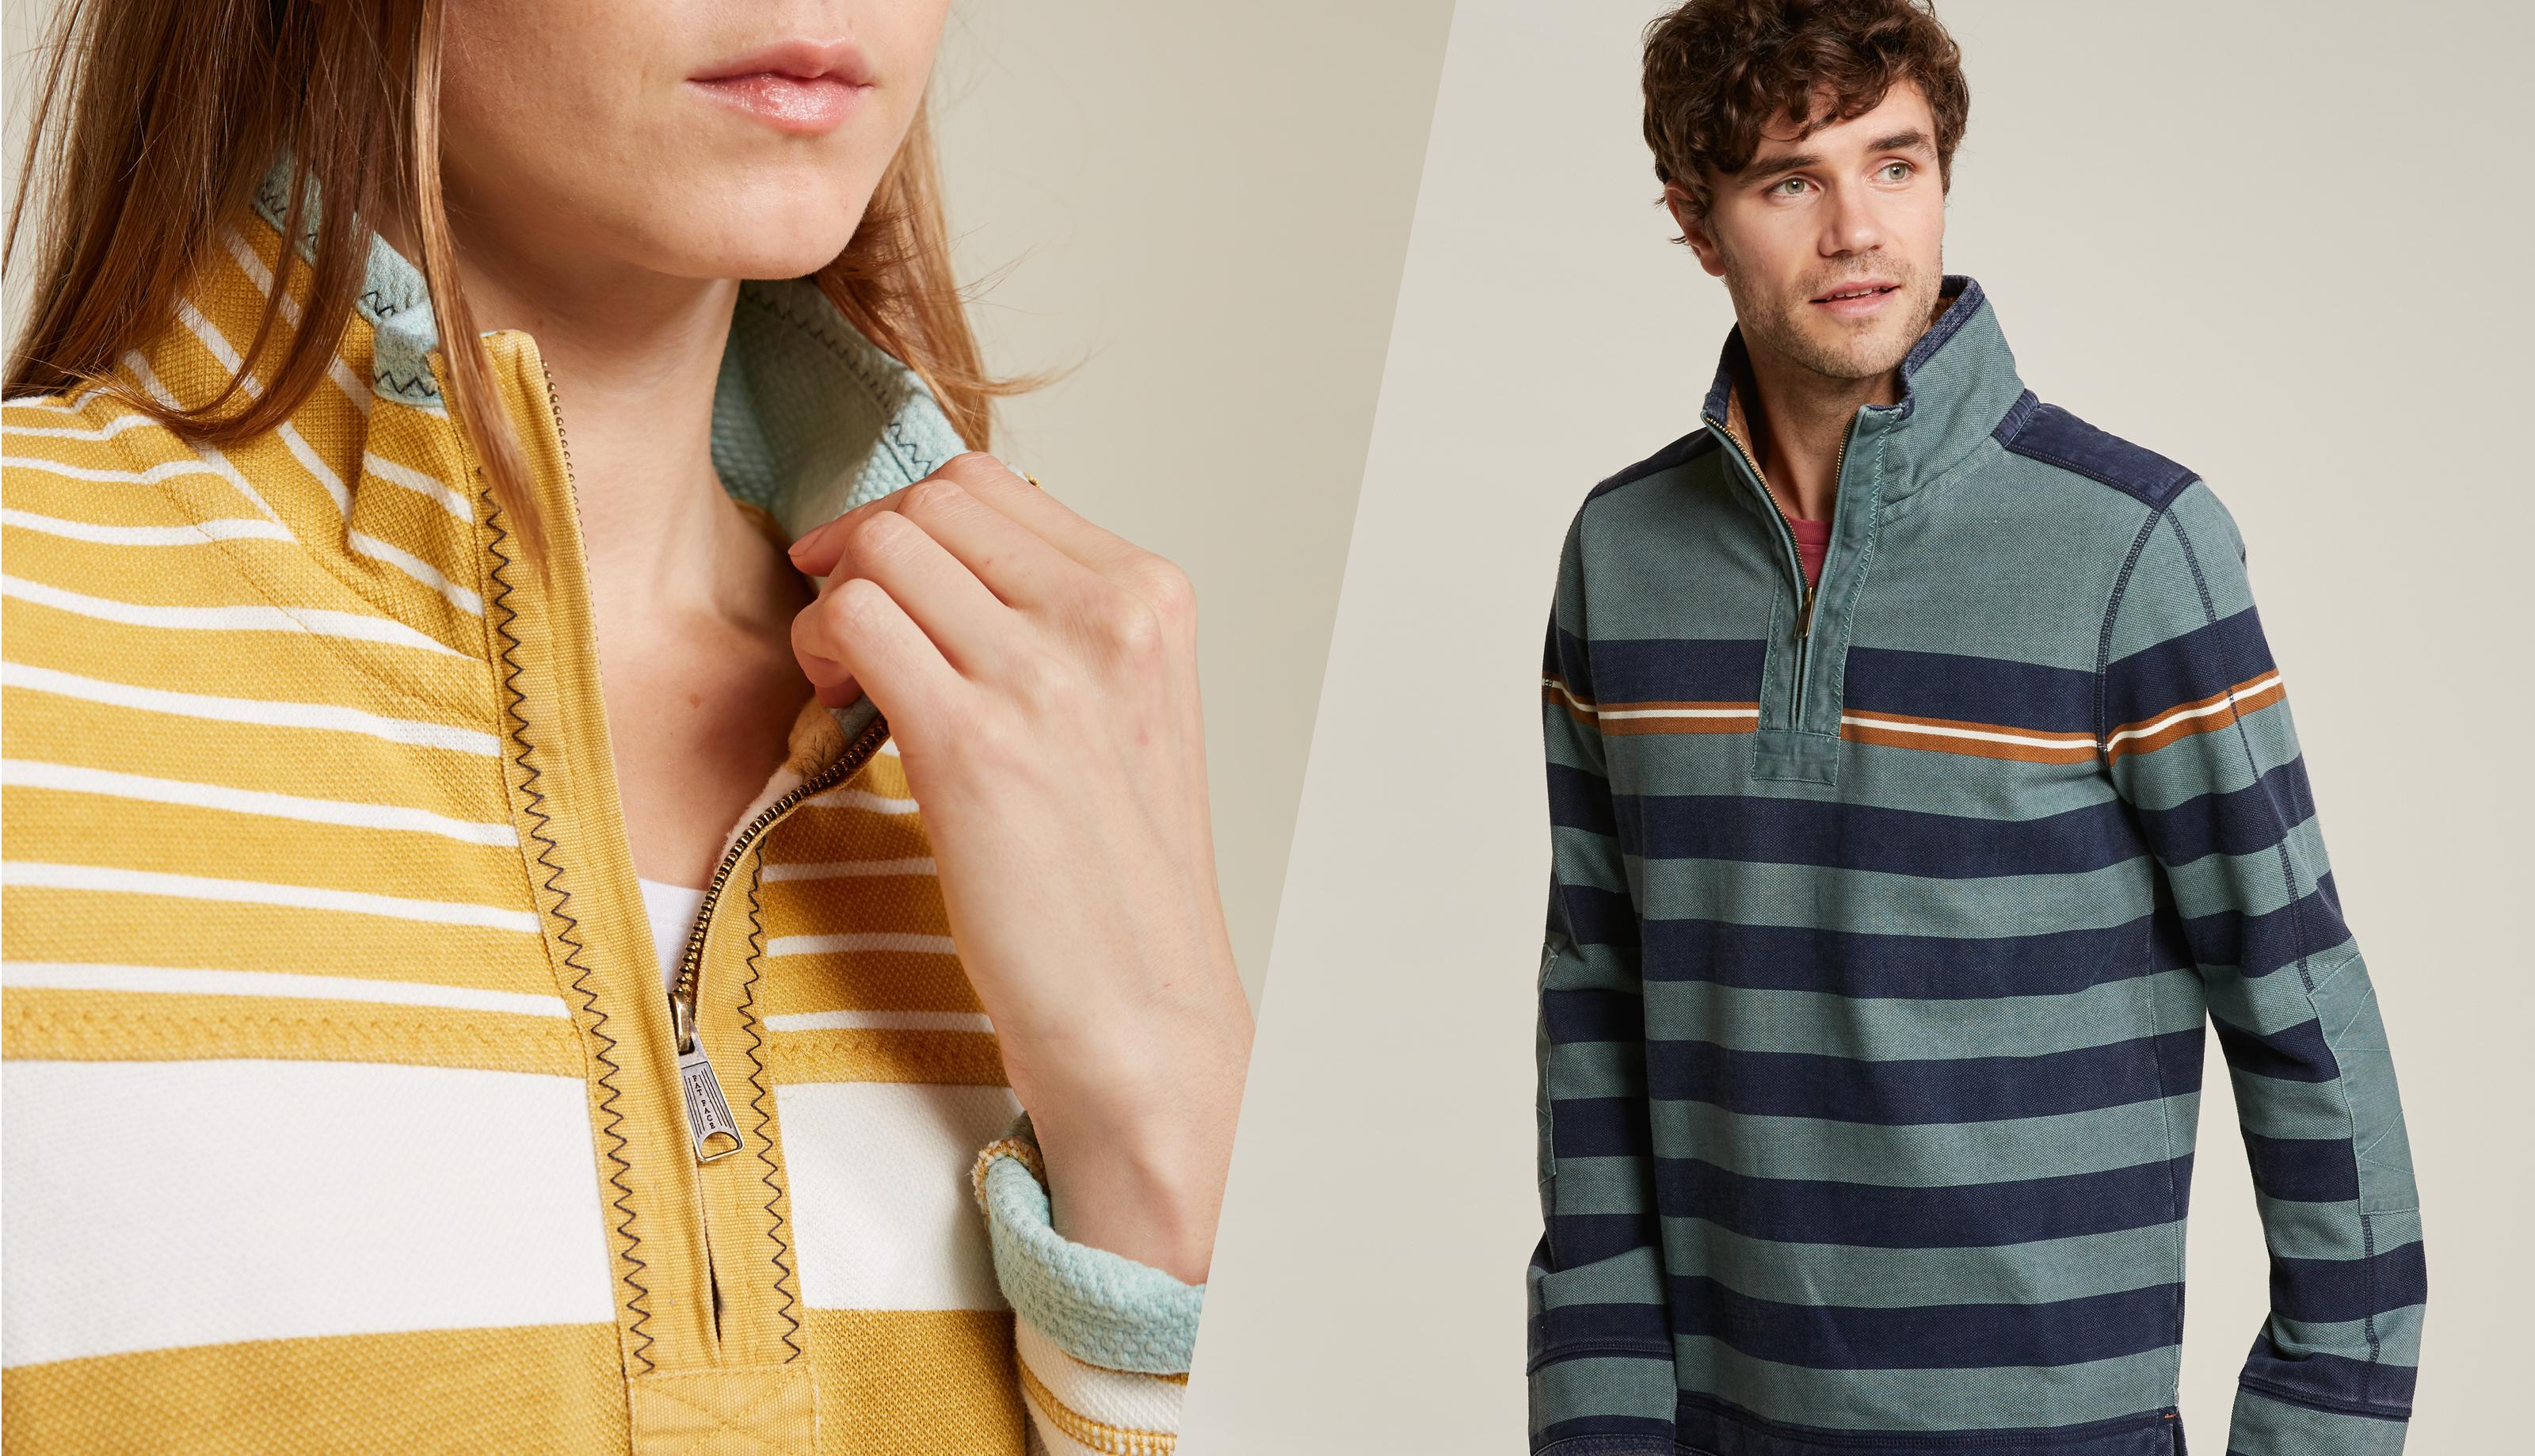 A close up of a female model weaing a yellow stripe Airlie sweatshirt and a male model wearing a green and black stripe Airlie sweatshirt.